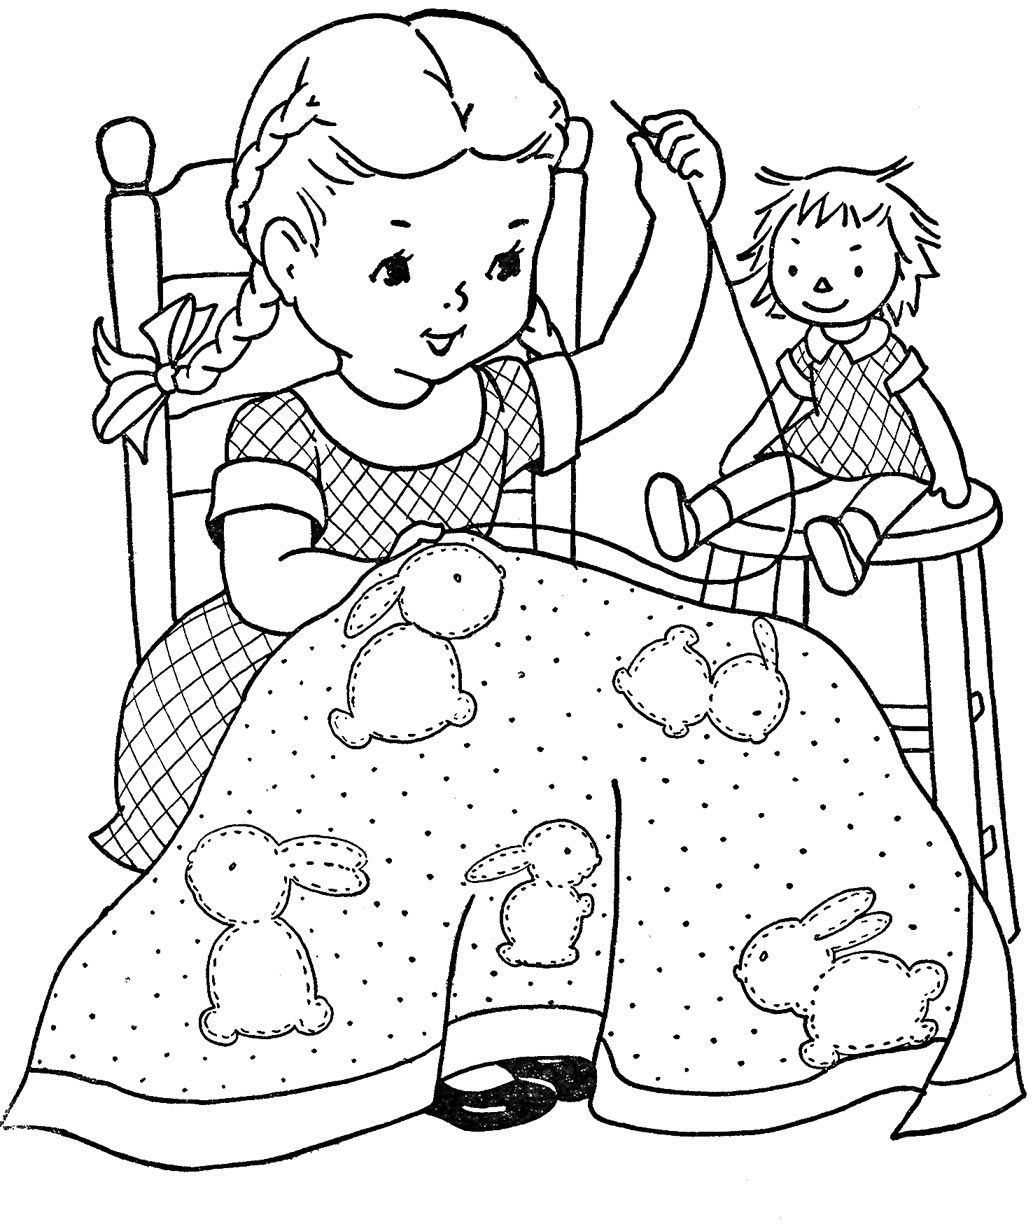 Vintage Patterns Coloring Pages. Sewing Machine Applique Quilt Patterns  Advanced Embroidery Designs Baby Animals Children Coloring PagesColoring